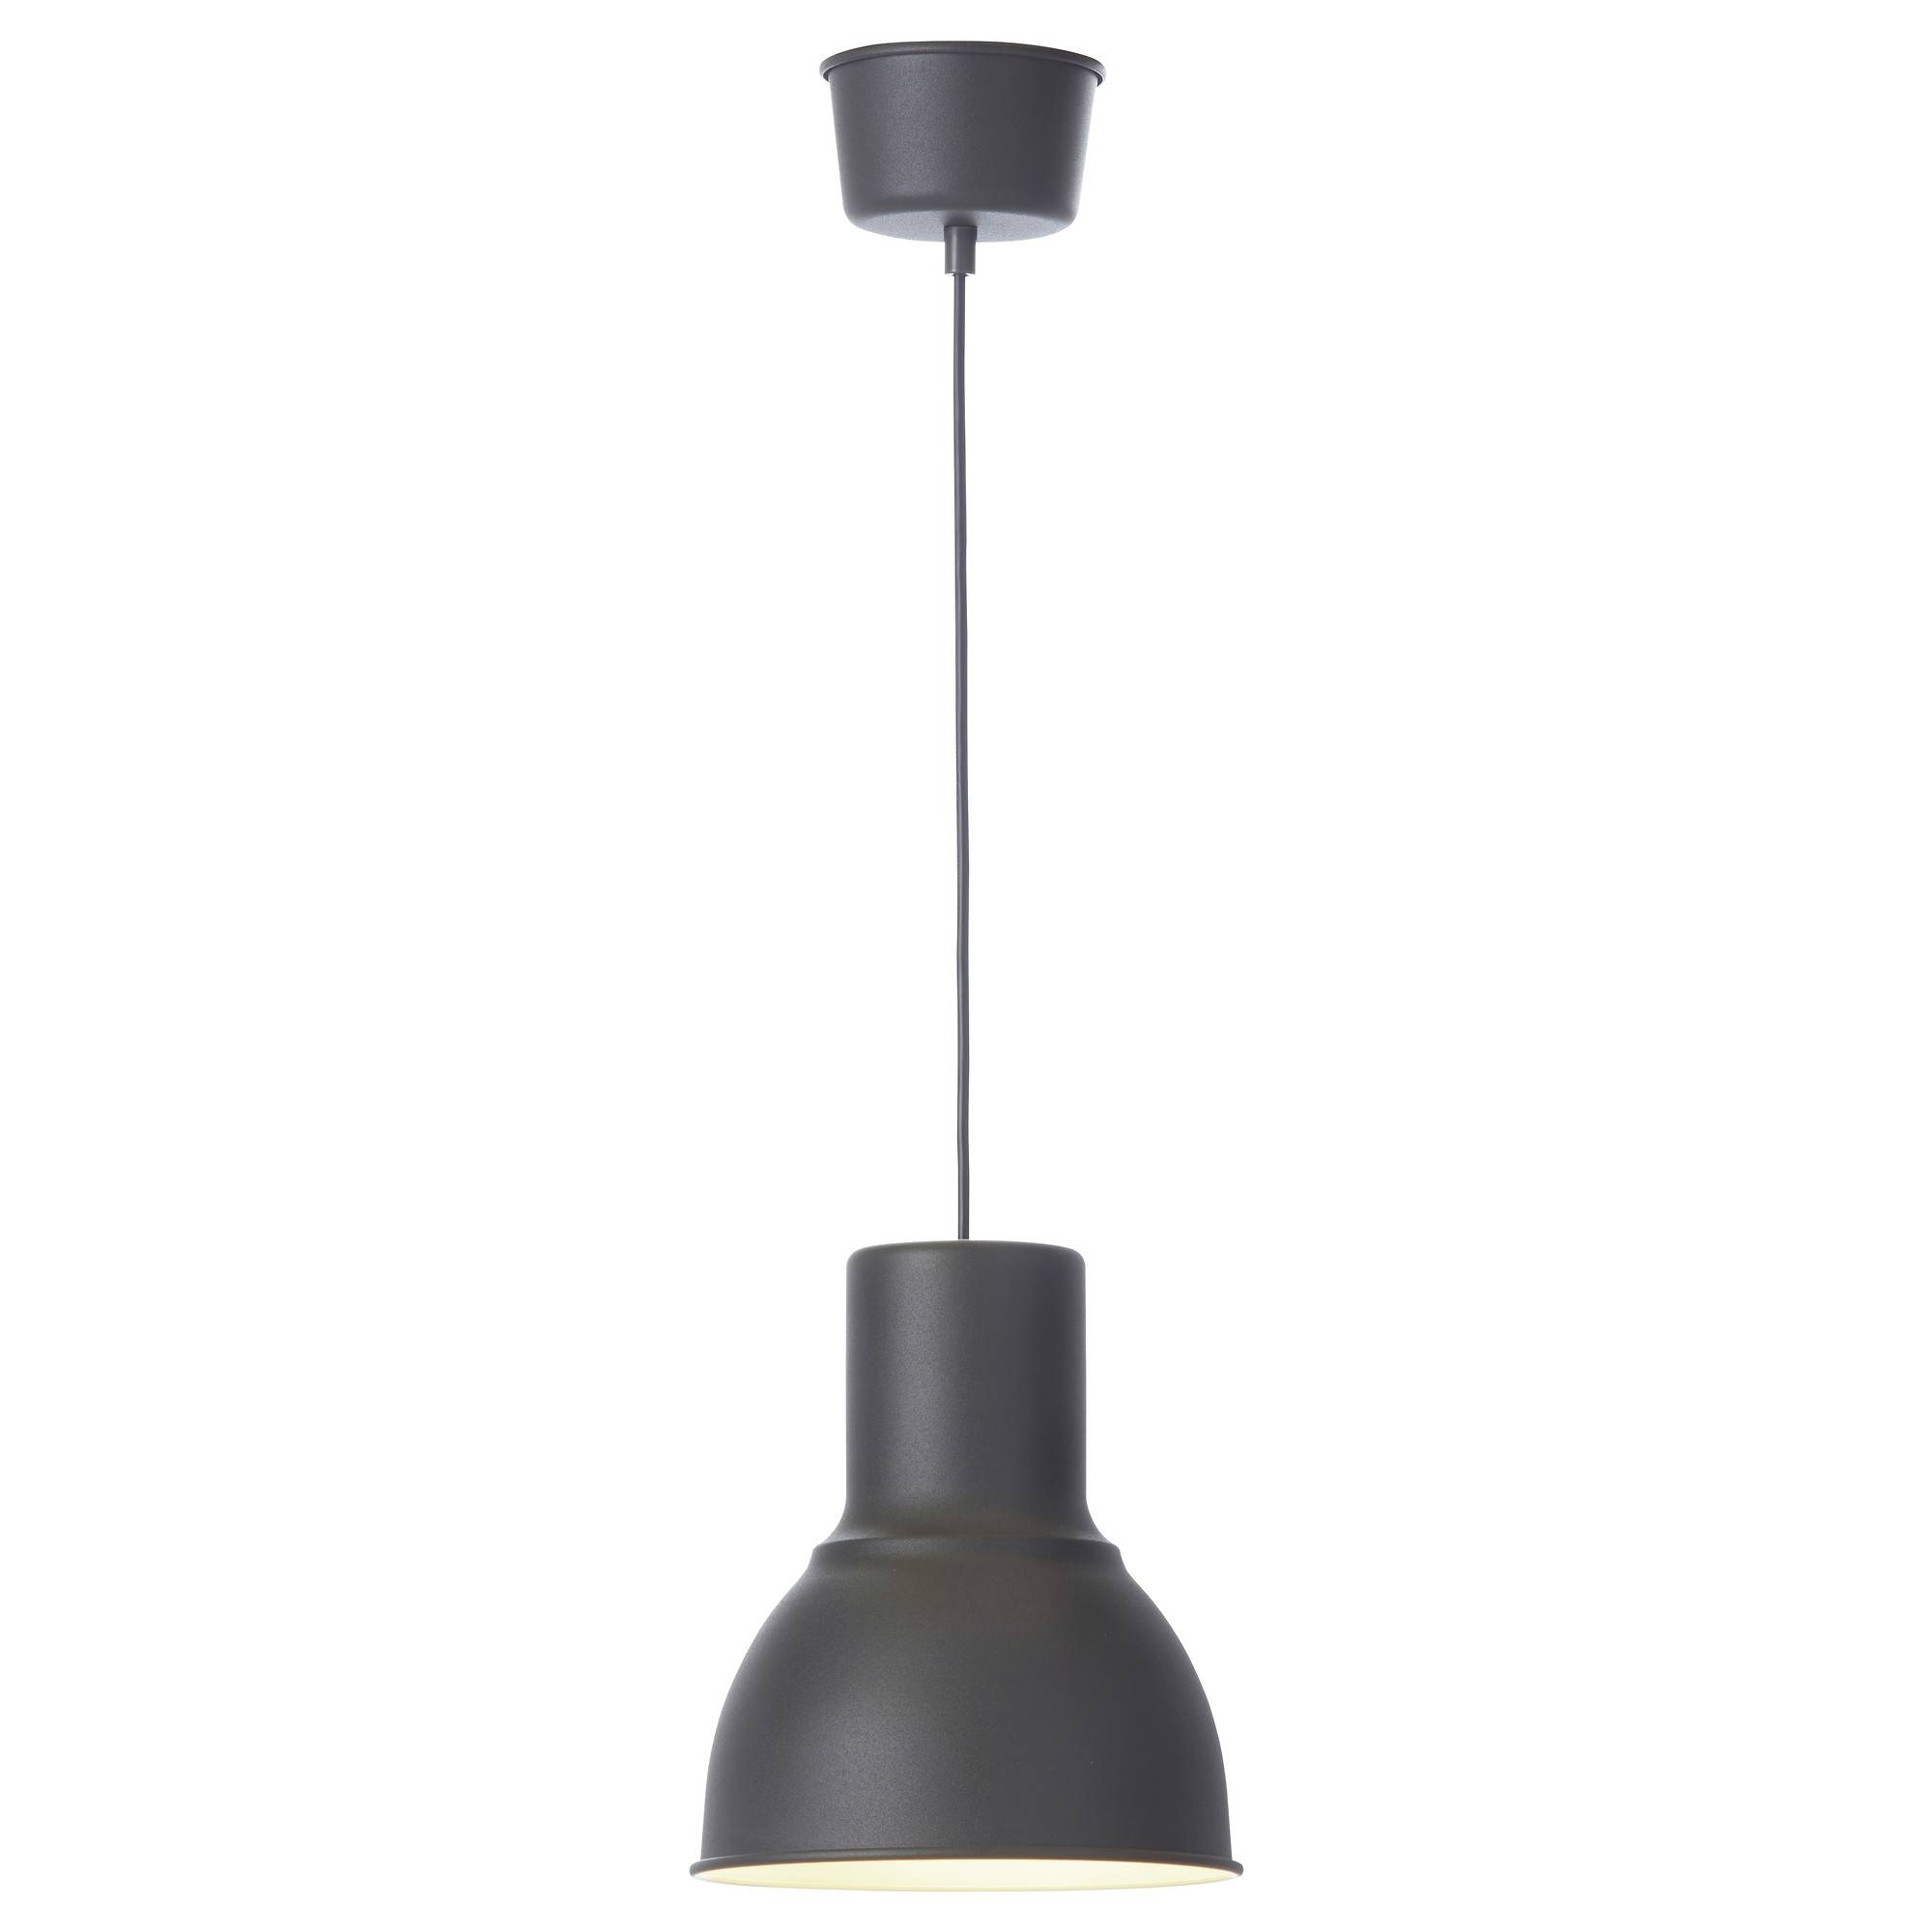 Hektar Pendant Lamp Dark Grey 22 Cm - Ikea for Ikea Pendant Lights Fixtures (Image 6 of 15)